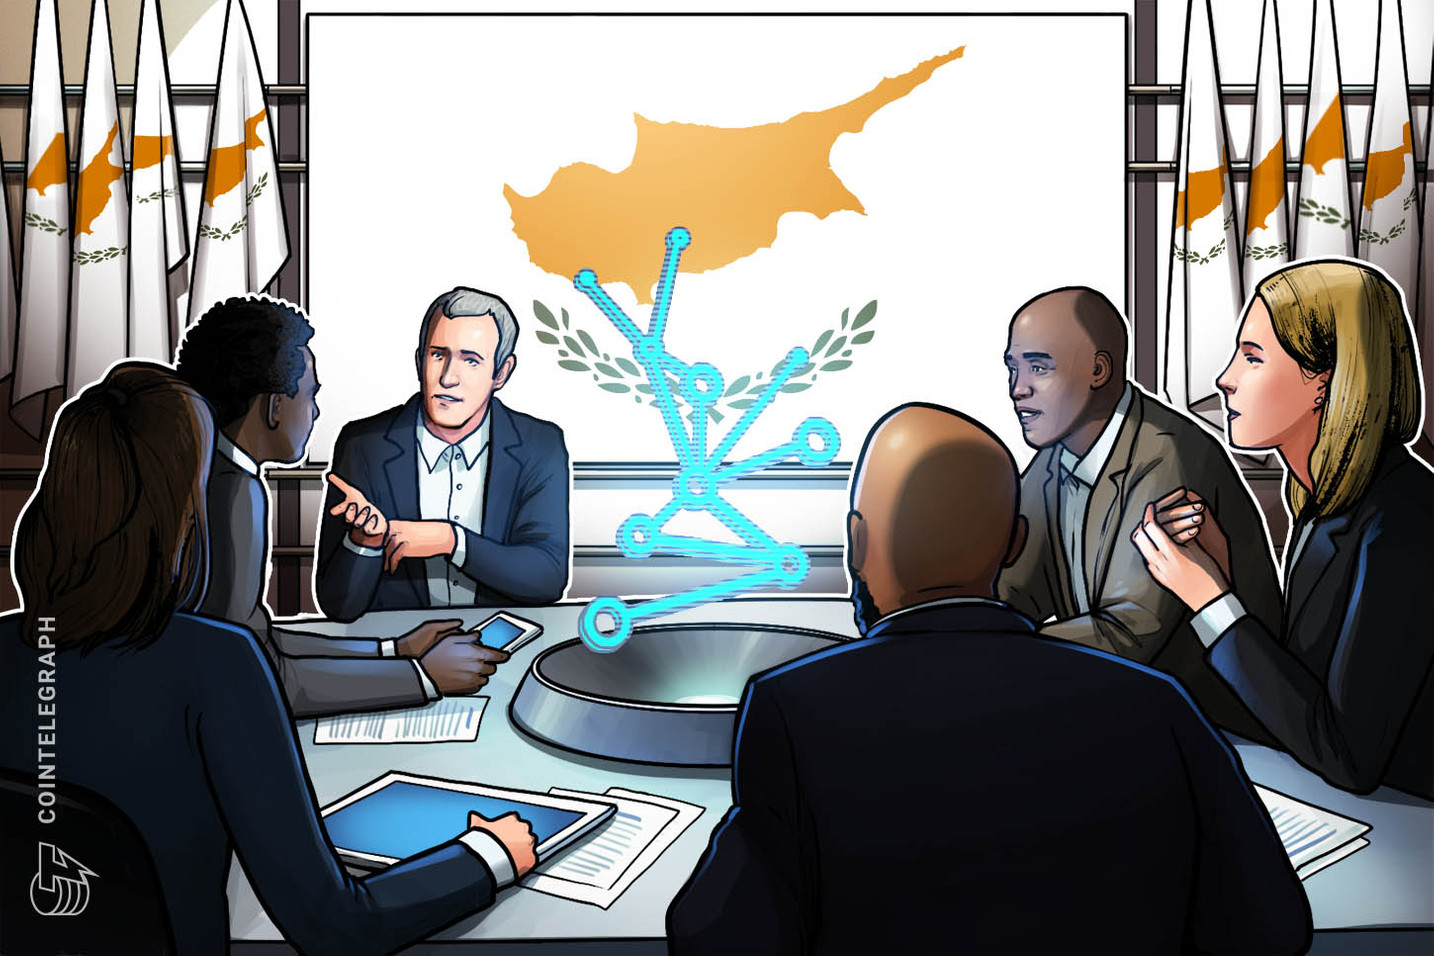 Cyprus' Finance Minister: Blockchain Draft Bill to be Ready This Year